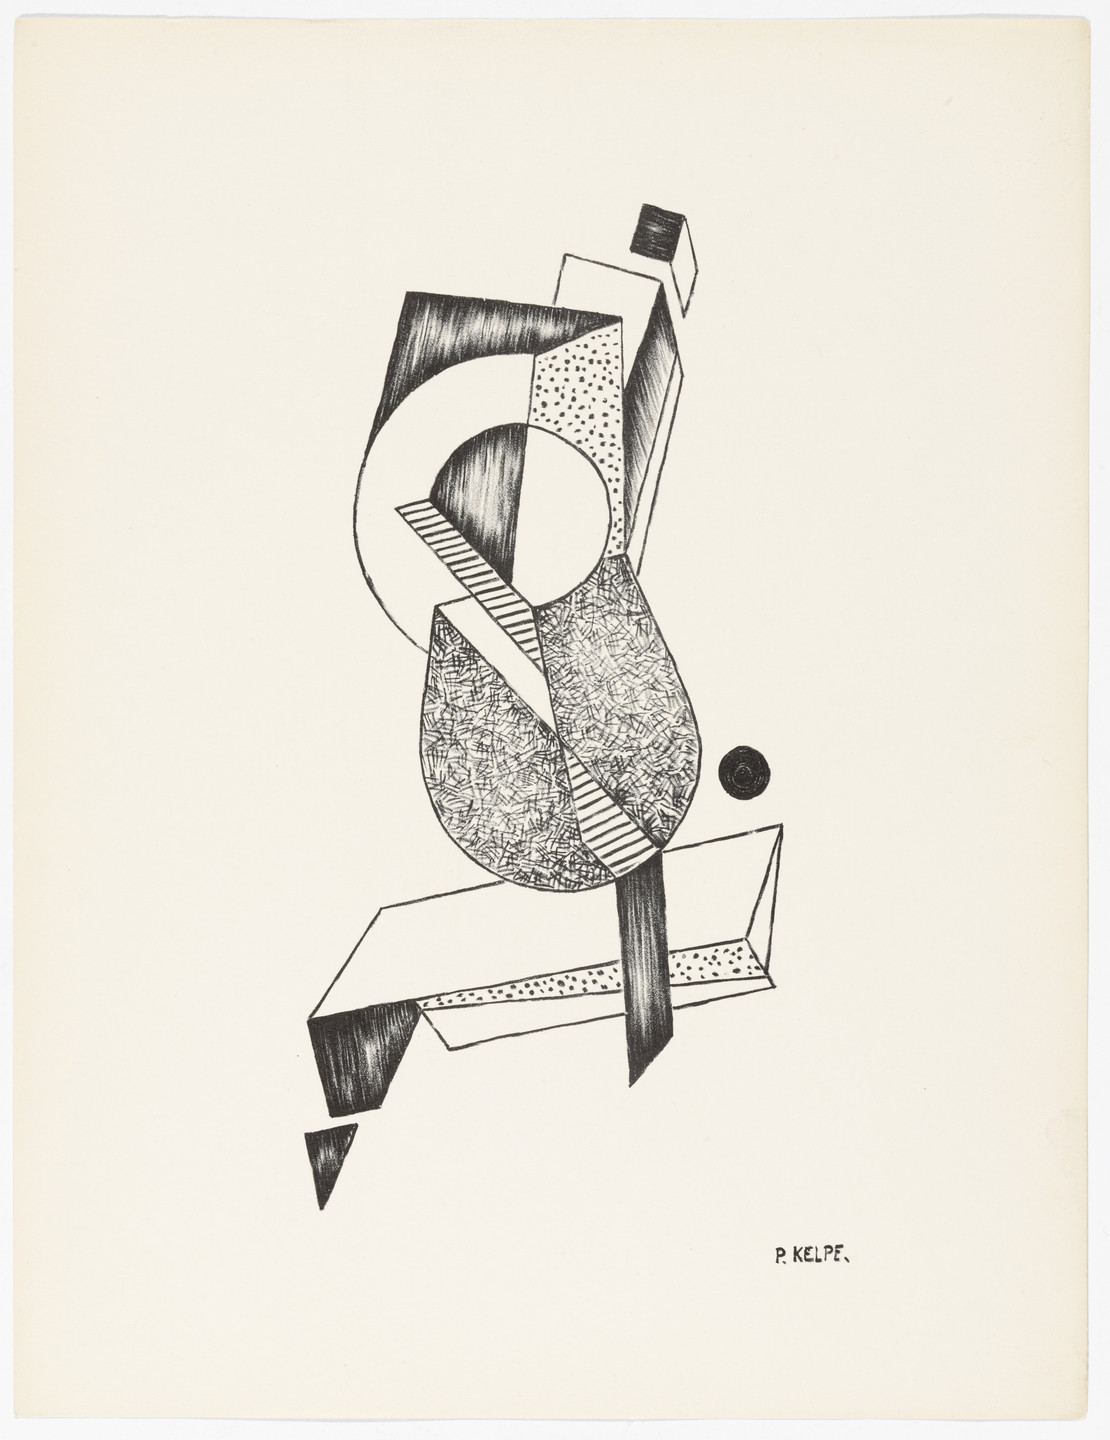 Paul Kelpe. Untitled from American Abstract Artists. 1937